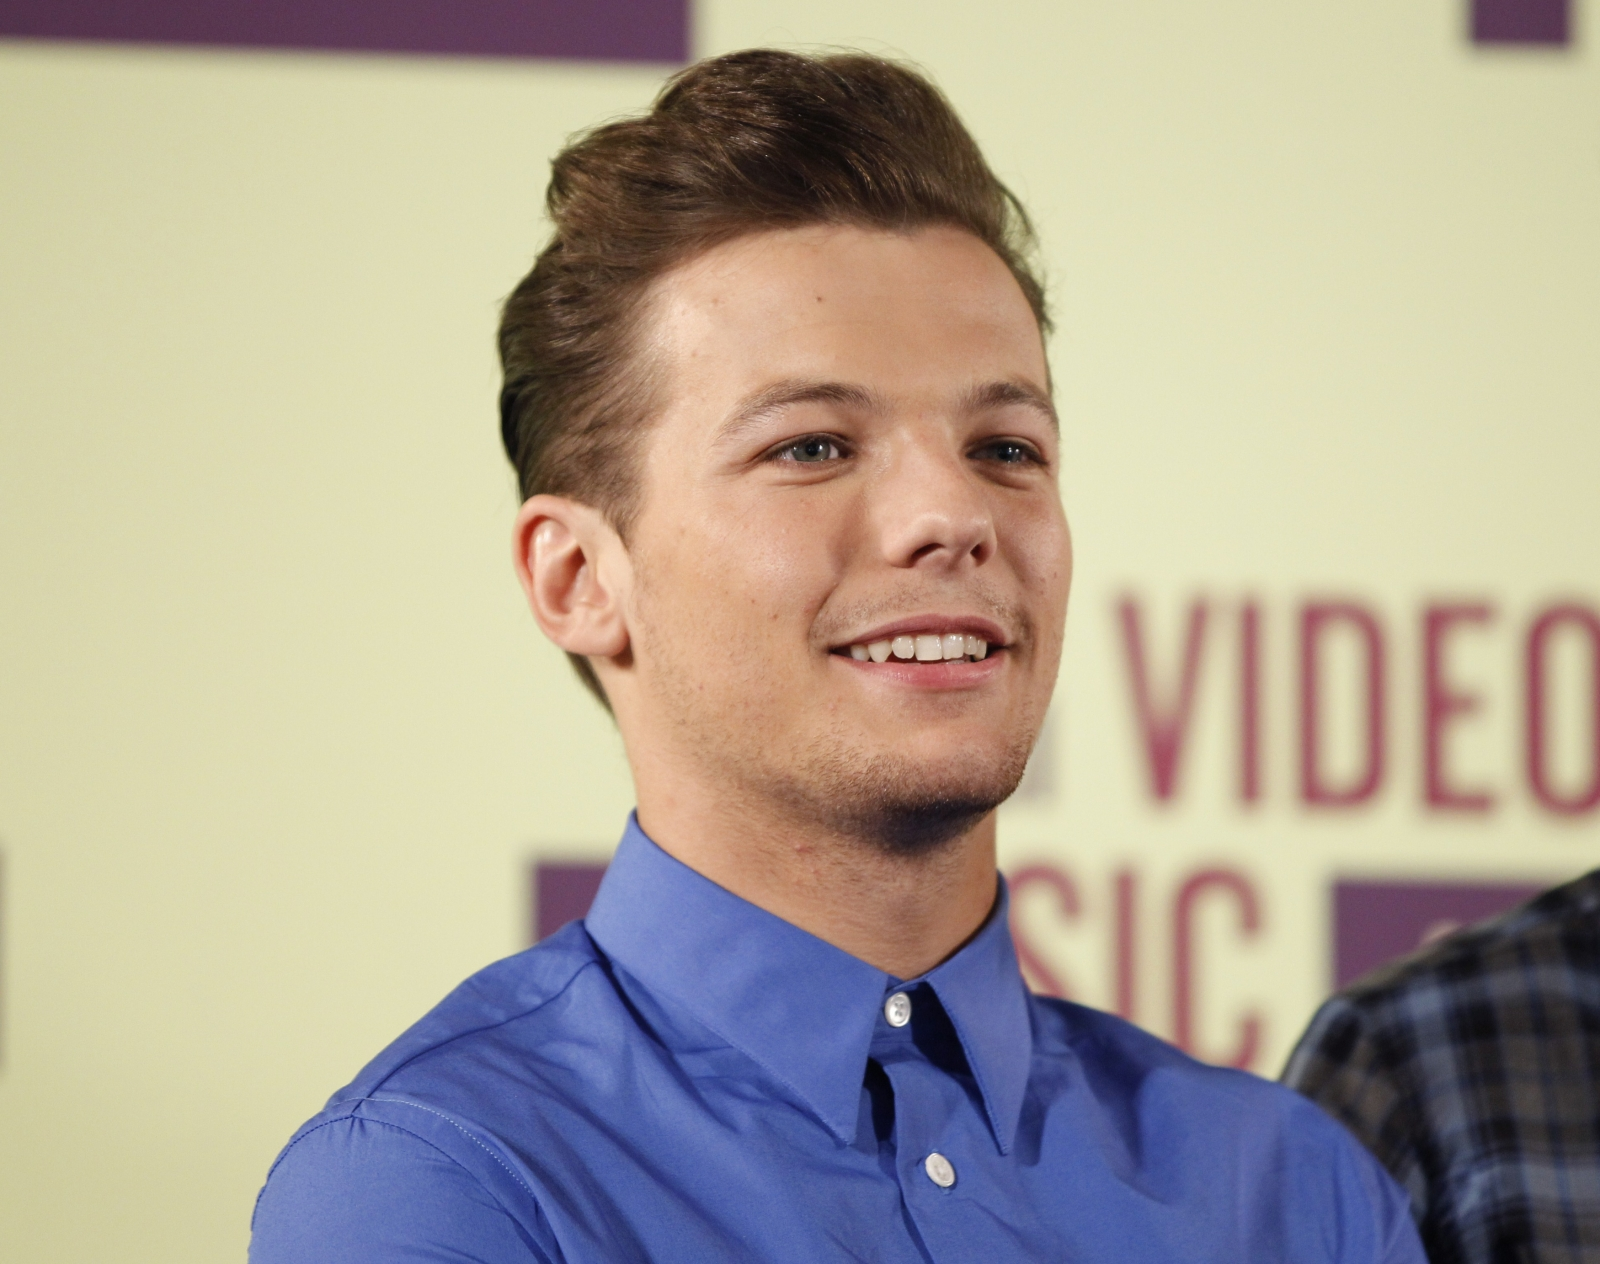 Louis Tomlinson Picture: X Factor 2015: One Direction's Louis Tomlinson To Join